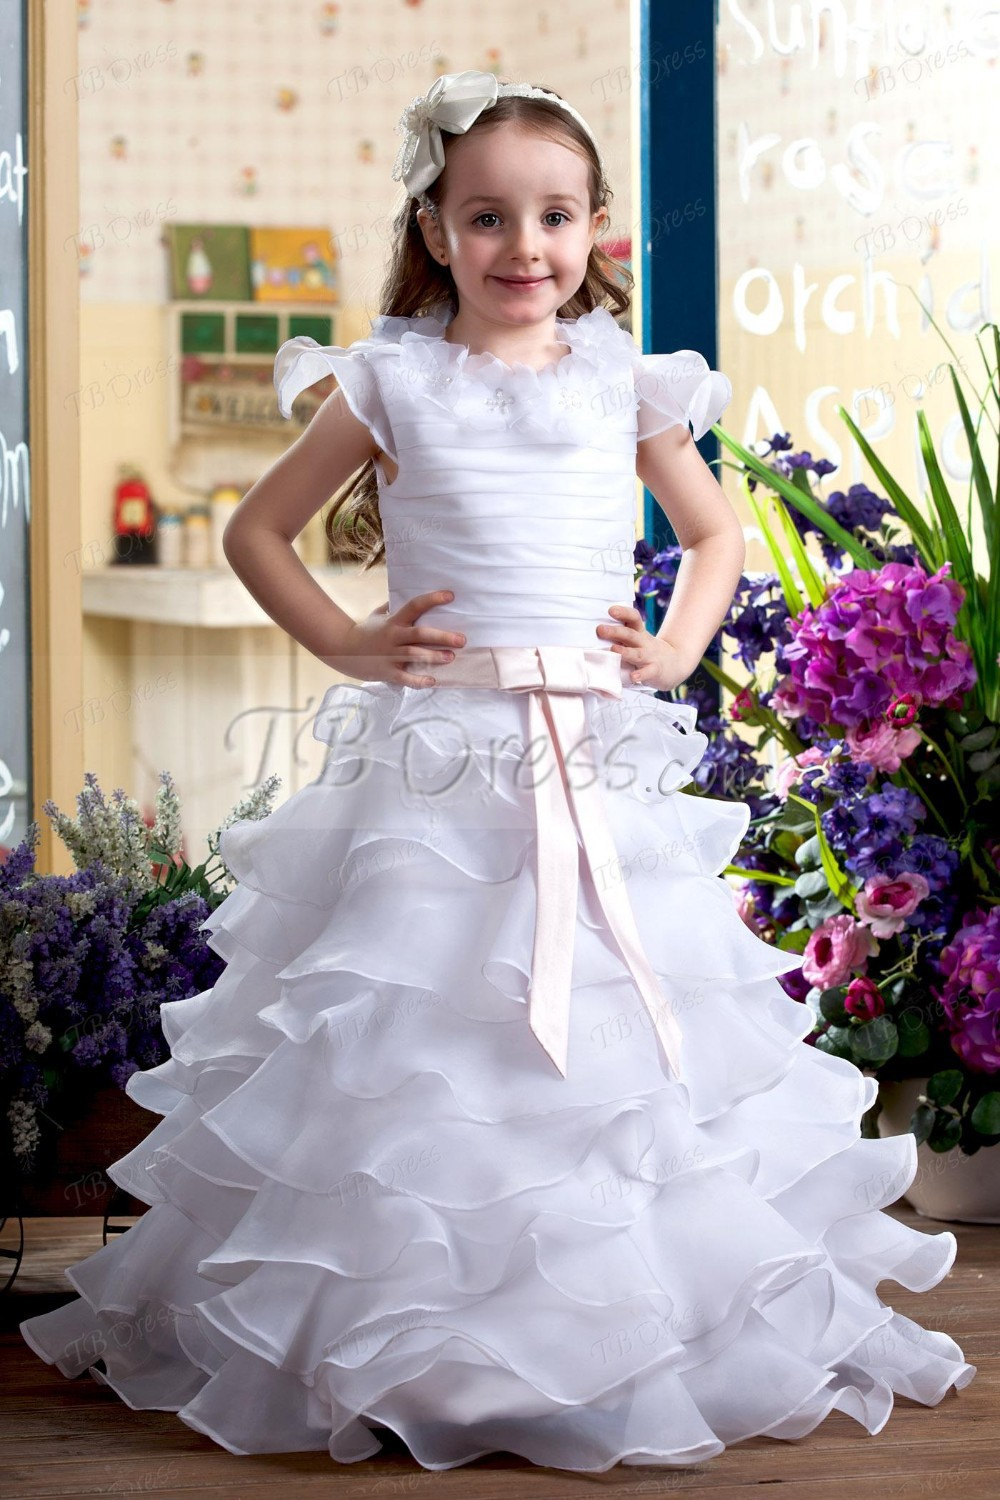 New Bohomian Princess White Flower Girl Dress Fluffy Ball Gown Girls Birthday Pageant Gown Tutu First Communion Dress new boho white lace flower girl dress a line o neck girls first communion dress pageant gown any size